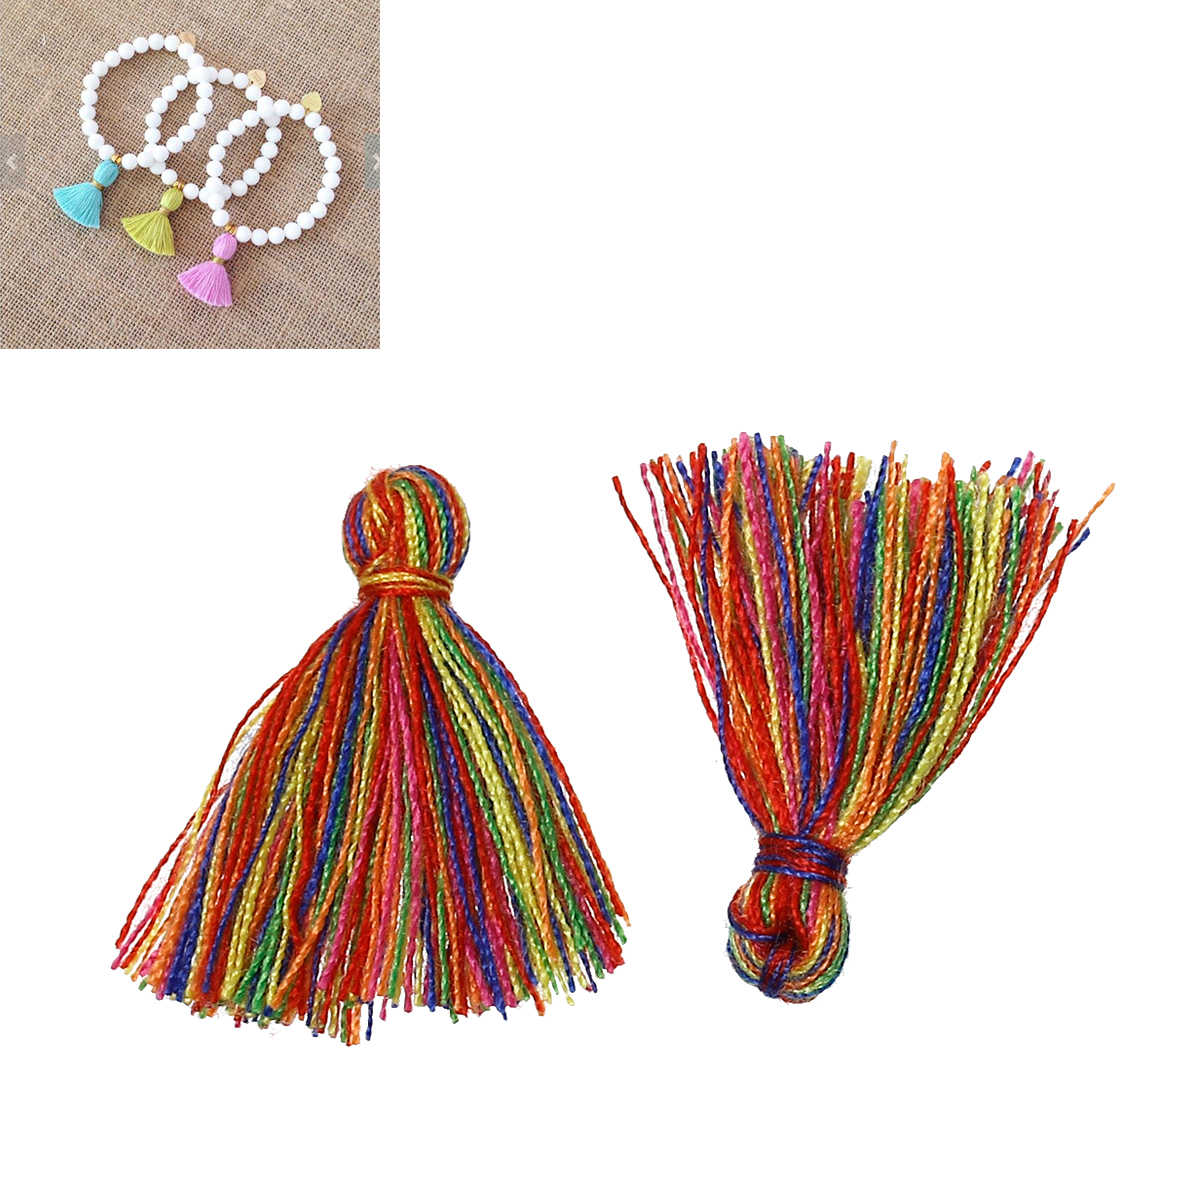 LASPERAL Cotton Tassels 20PCs Multicolor 2.5cm Long Tassel Pendant Thread Tassels Charm For DIY Women Earring & Necklace Jewelry(China (Mainland))